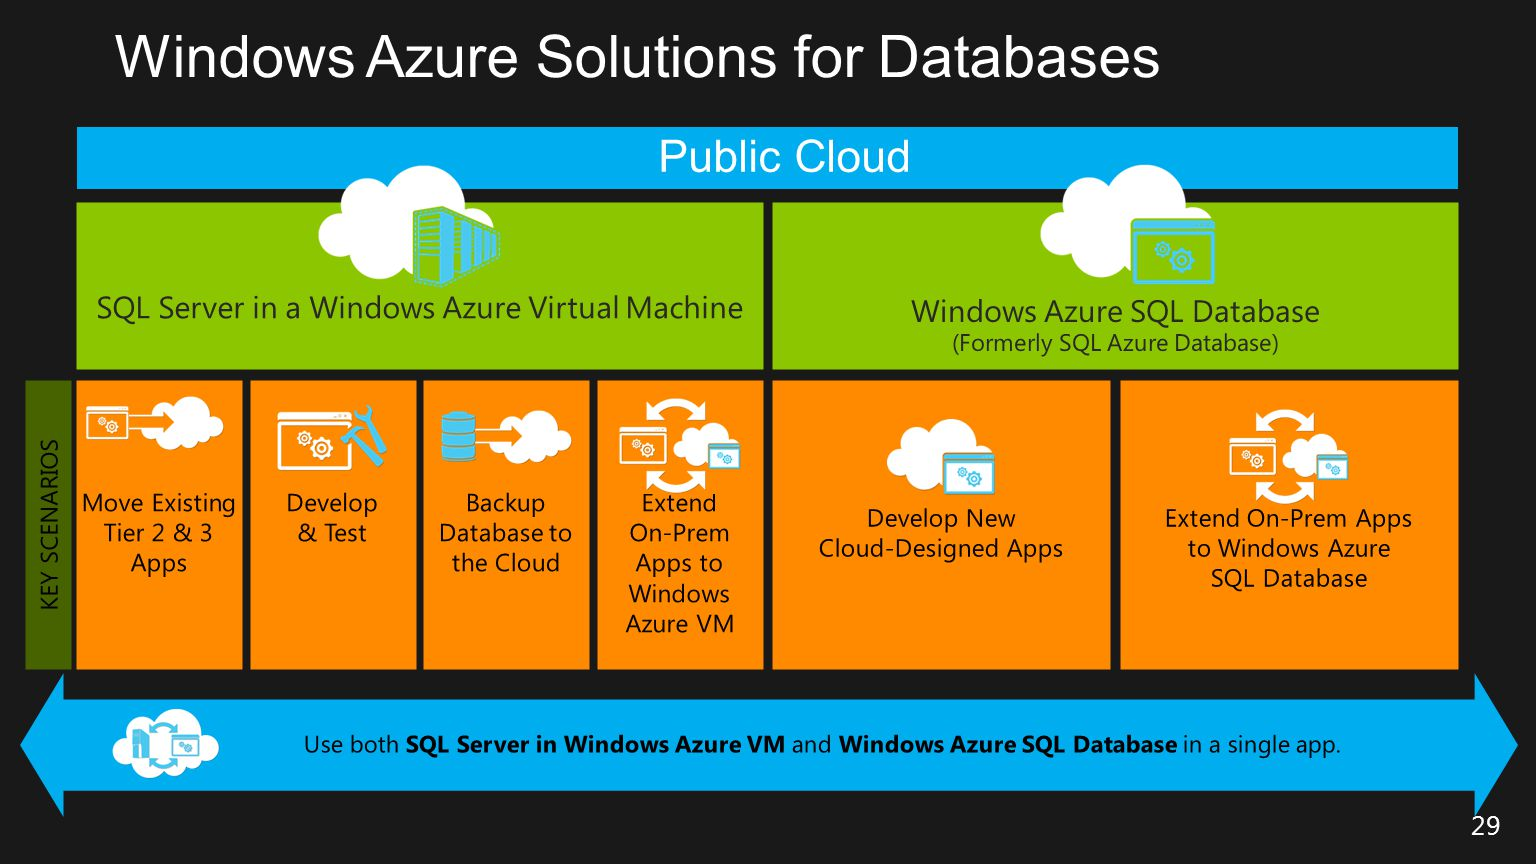 Windows Azure Solutions for Databases